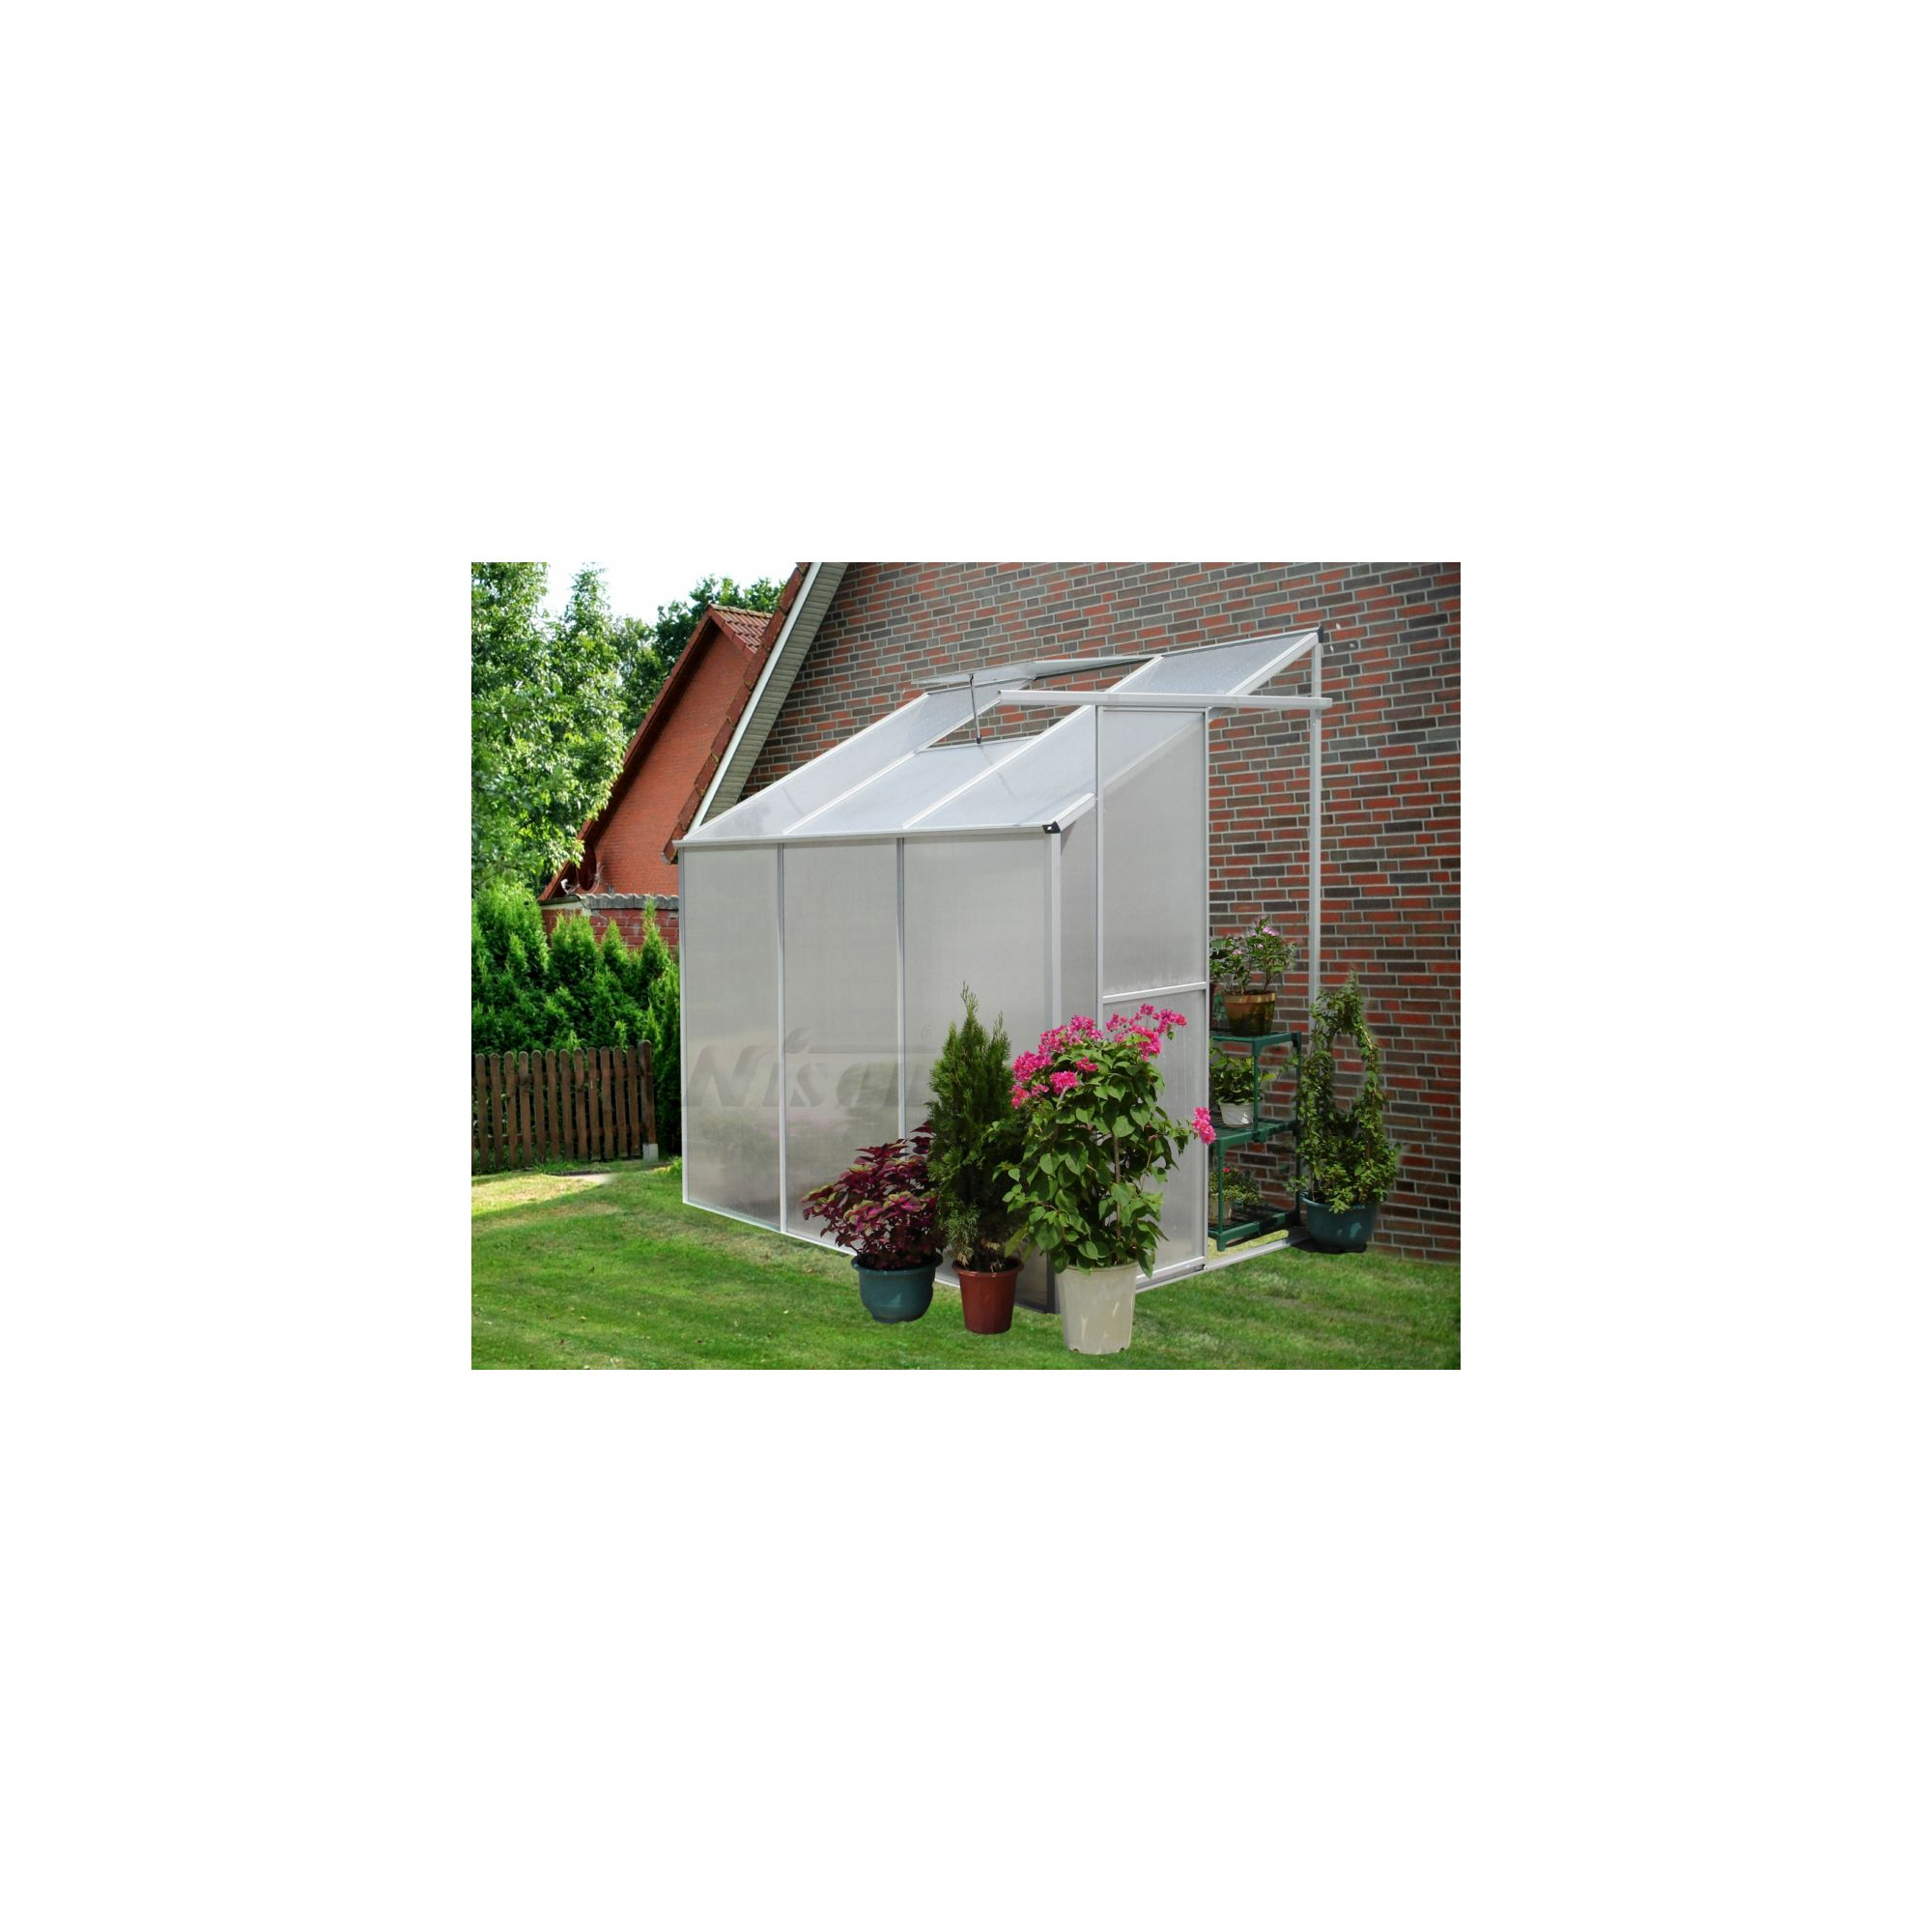 Nison Aquila 6x4 Aluminium Polycarbonate Lean To Greenhouse, Includes Base & Free Shelving at Tesco Direct